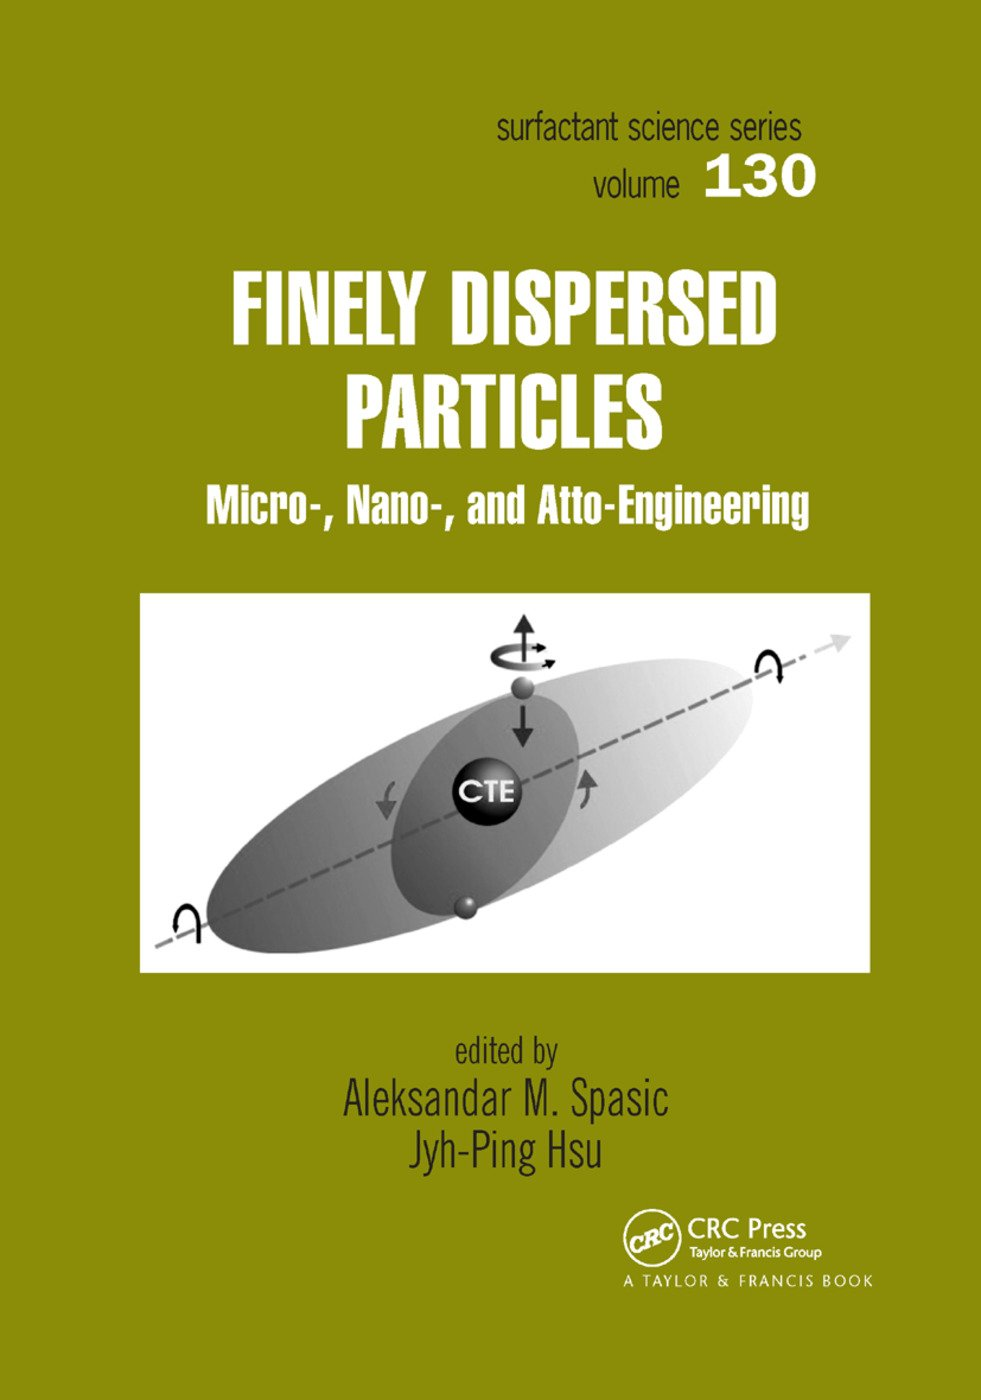 Finely Dispersed Particles: Micro-, Nano-, and Atto-Engineering, 1st Edition (Paperback) book cover